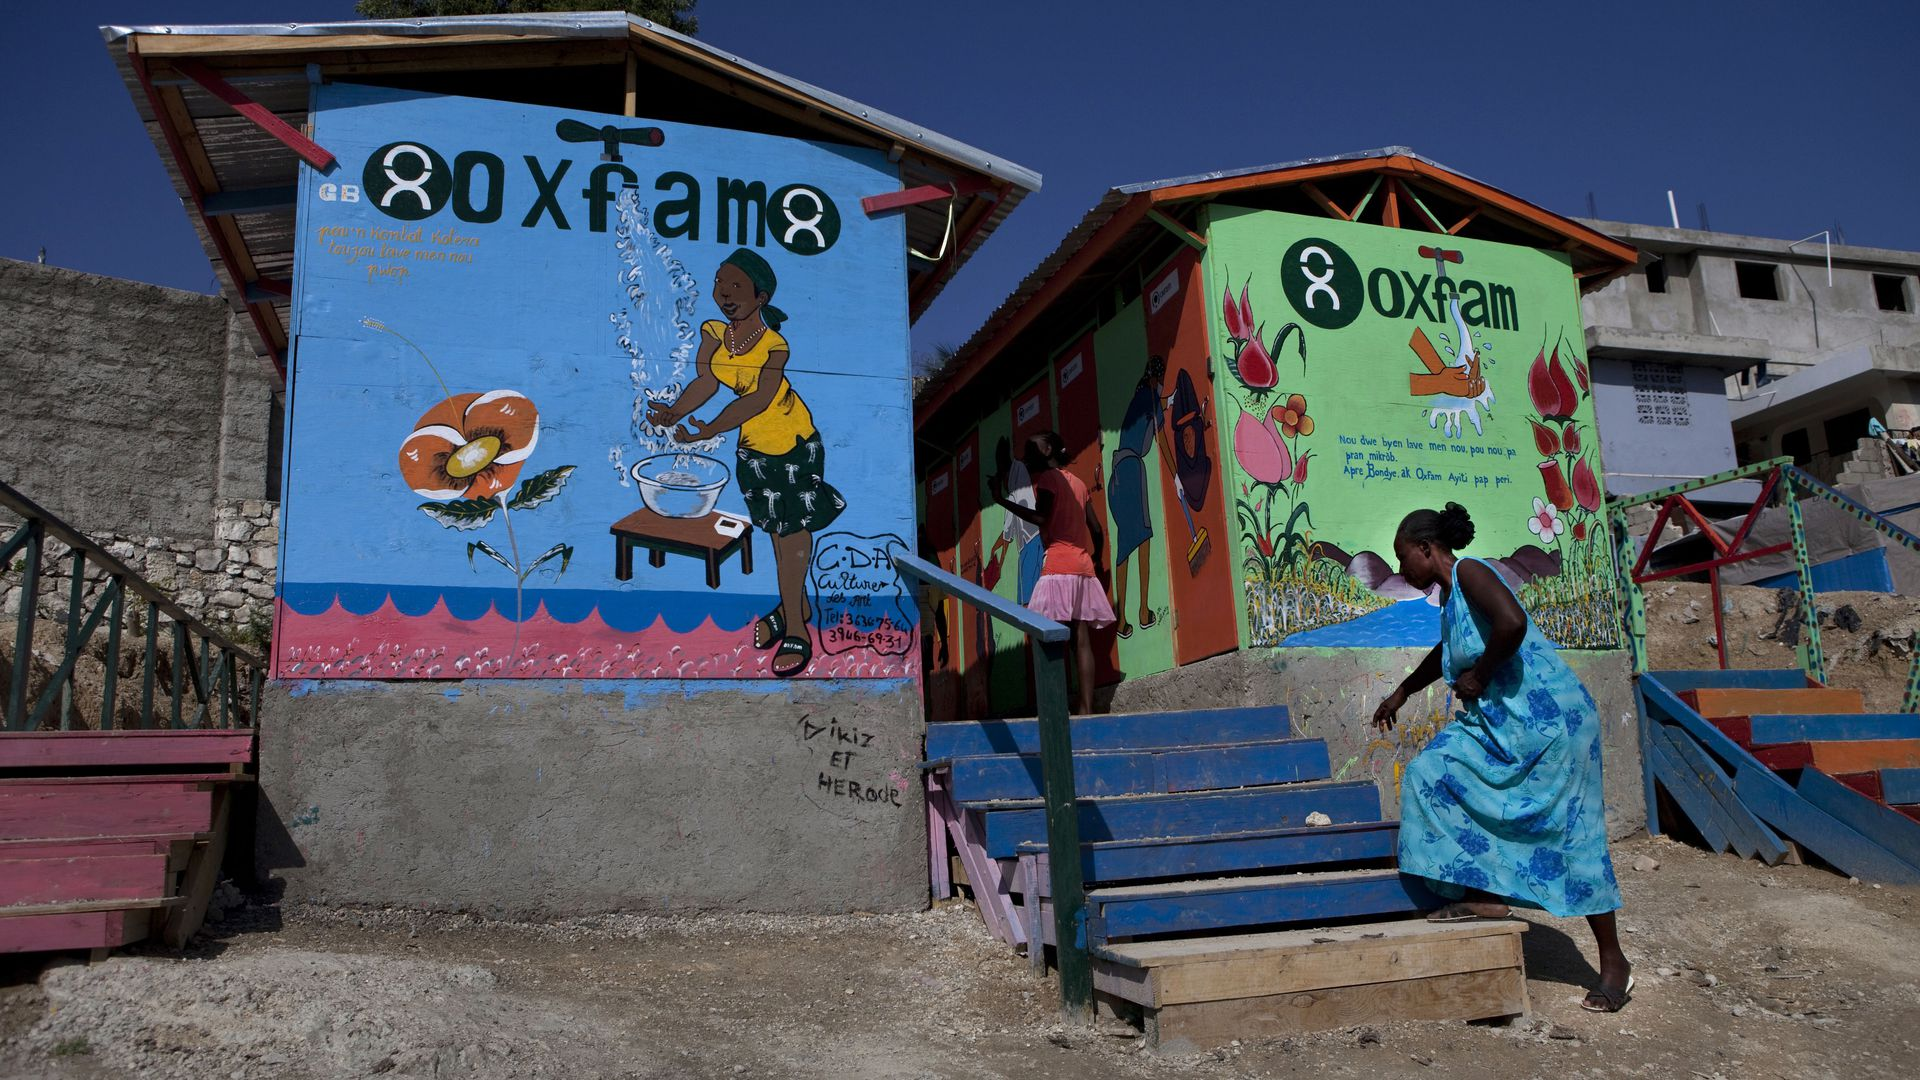 A lartine project led and financed by Oxfam in Haiti, 2011.